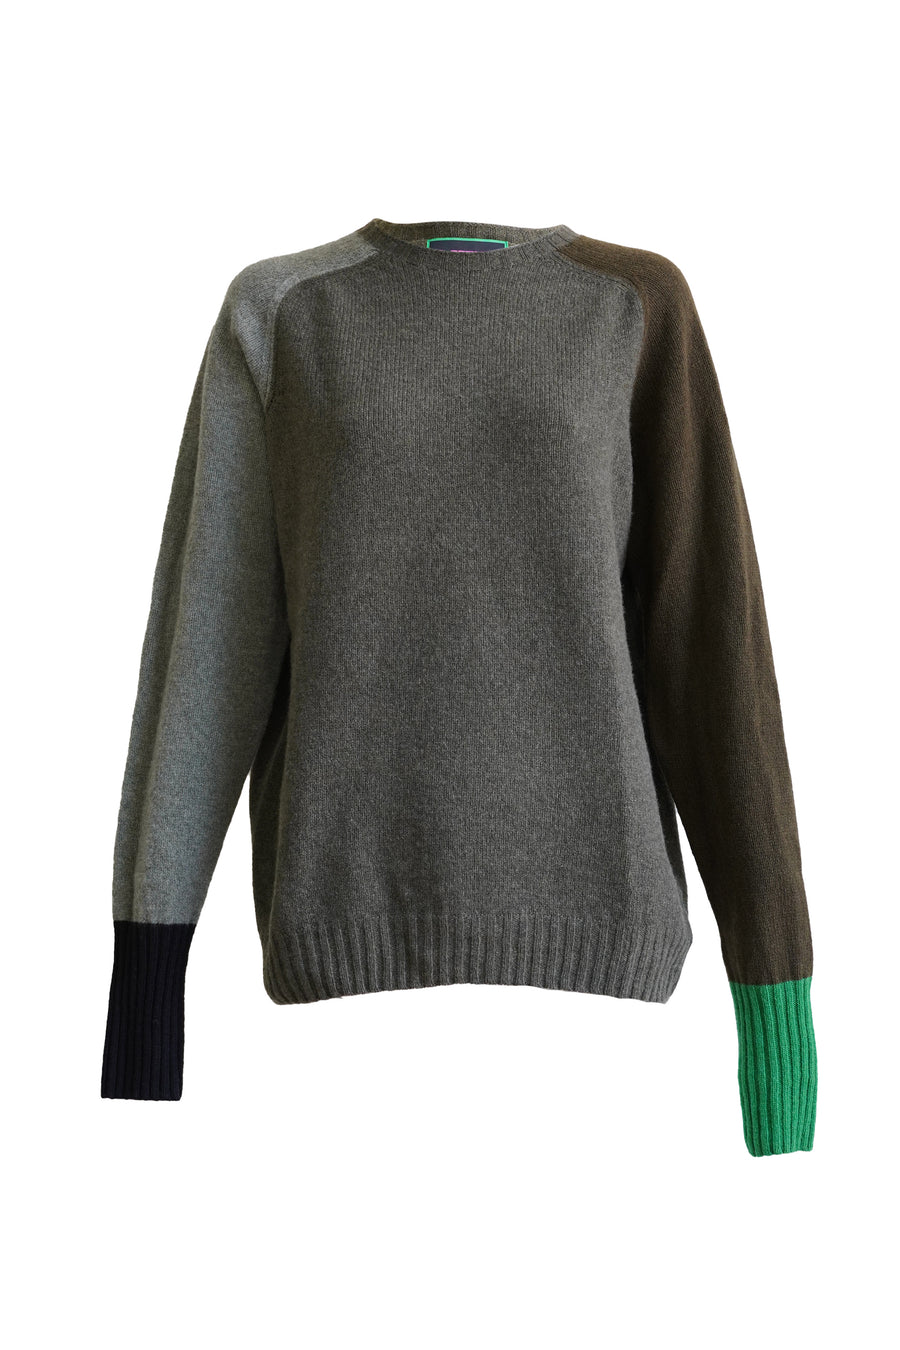 George Crewneck Sweater in Moss & Khaki